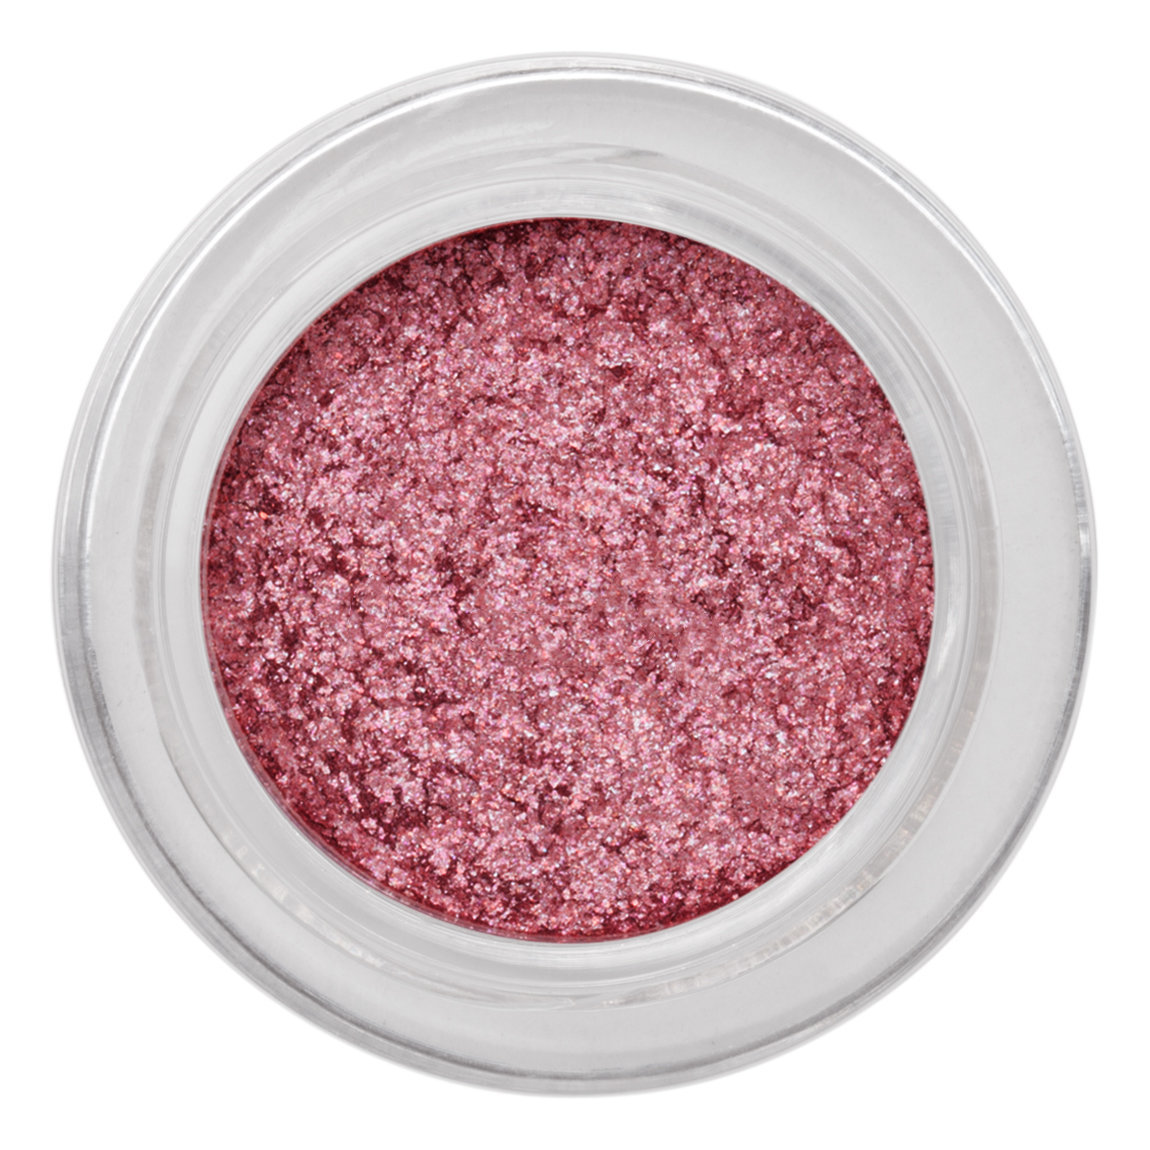 Hourglass Scattered Light Glitter Eyeshadow Aura